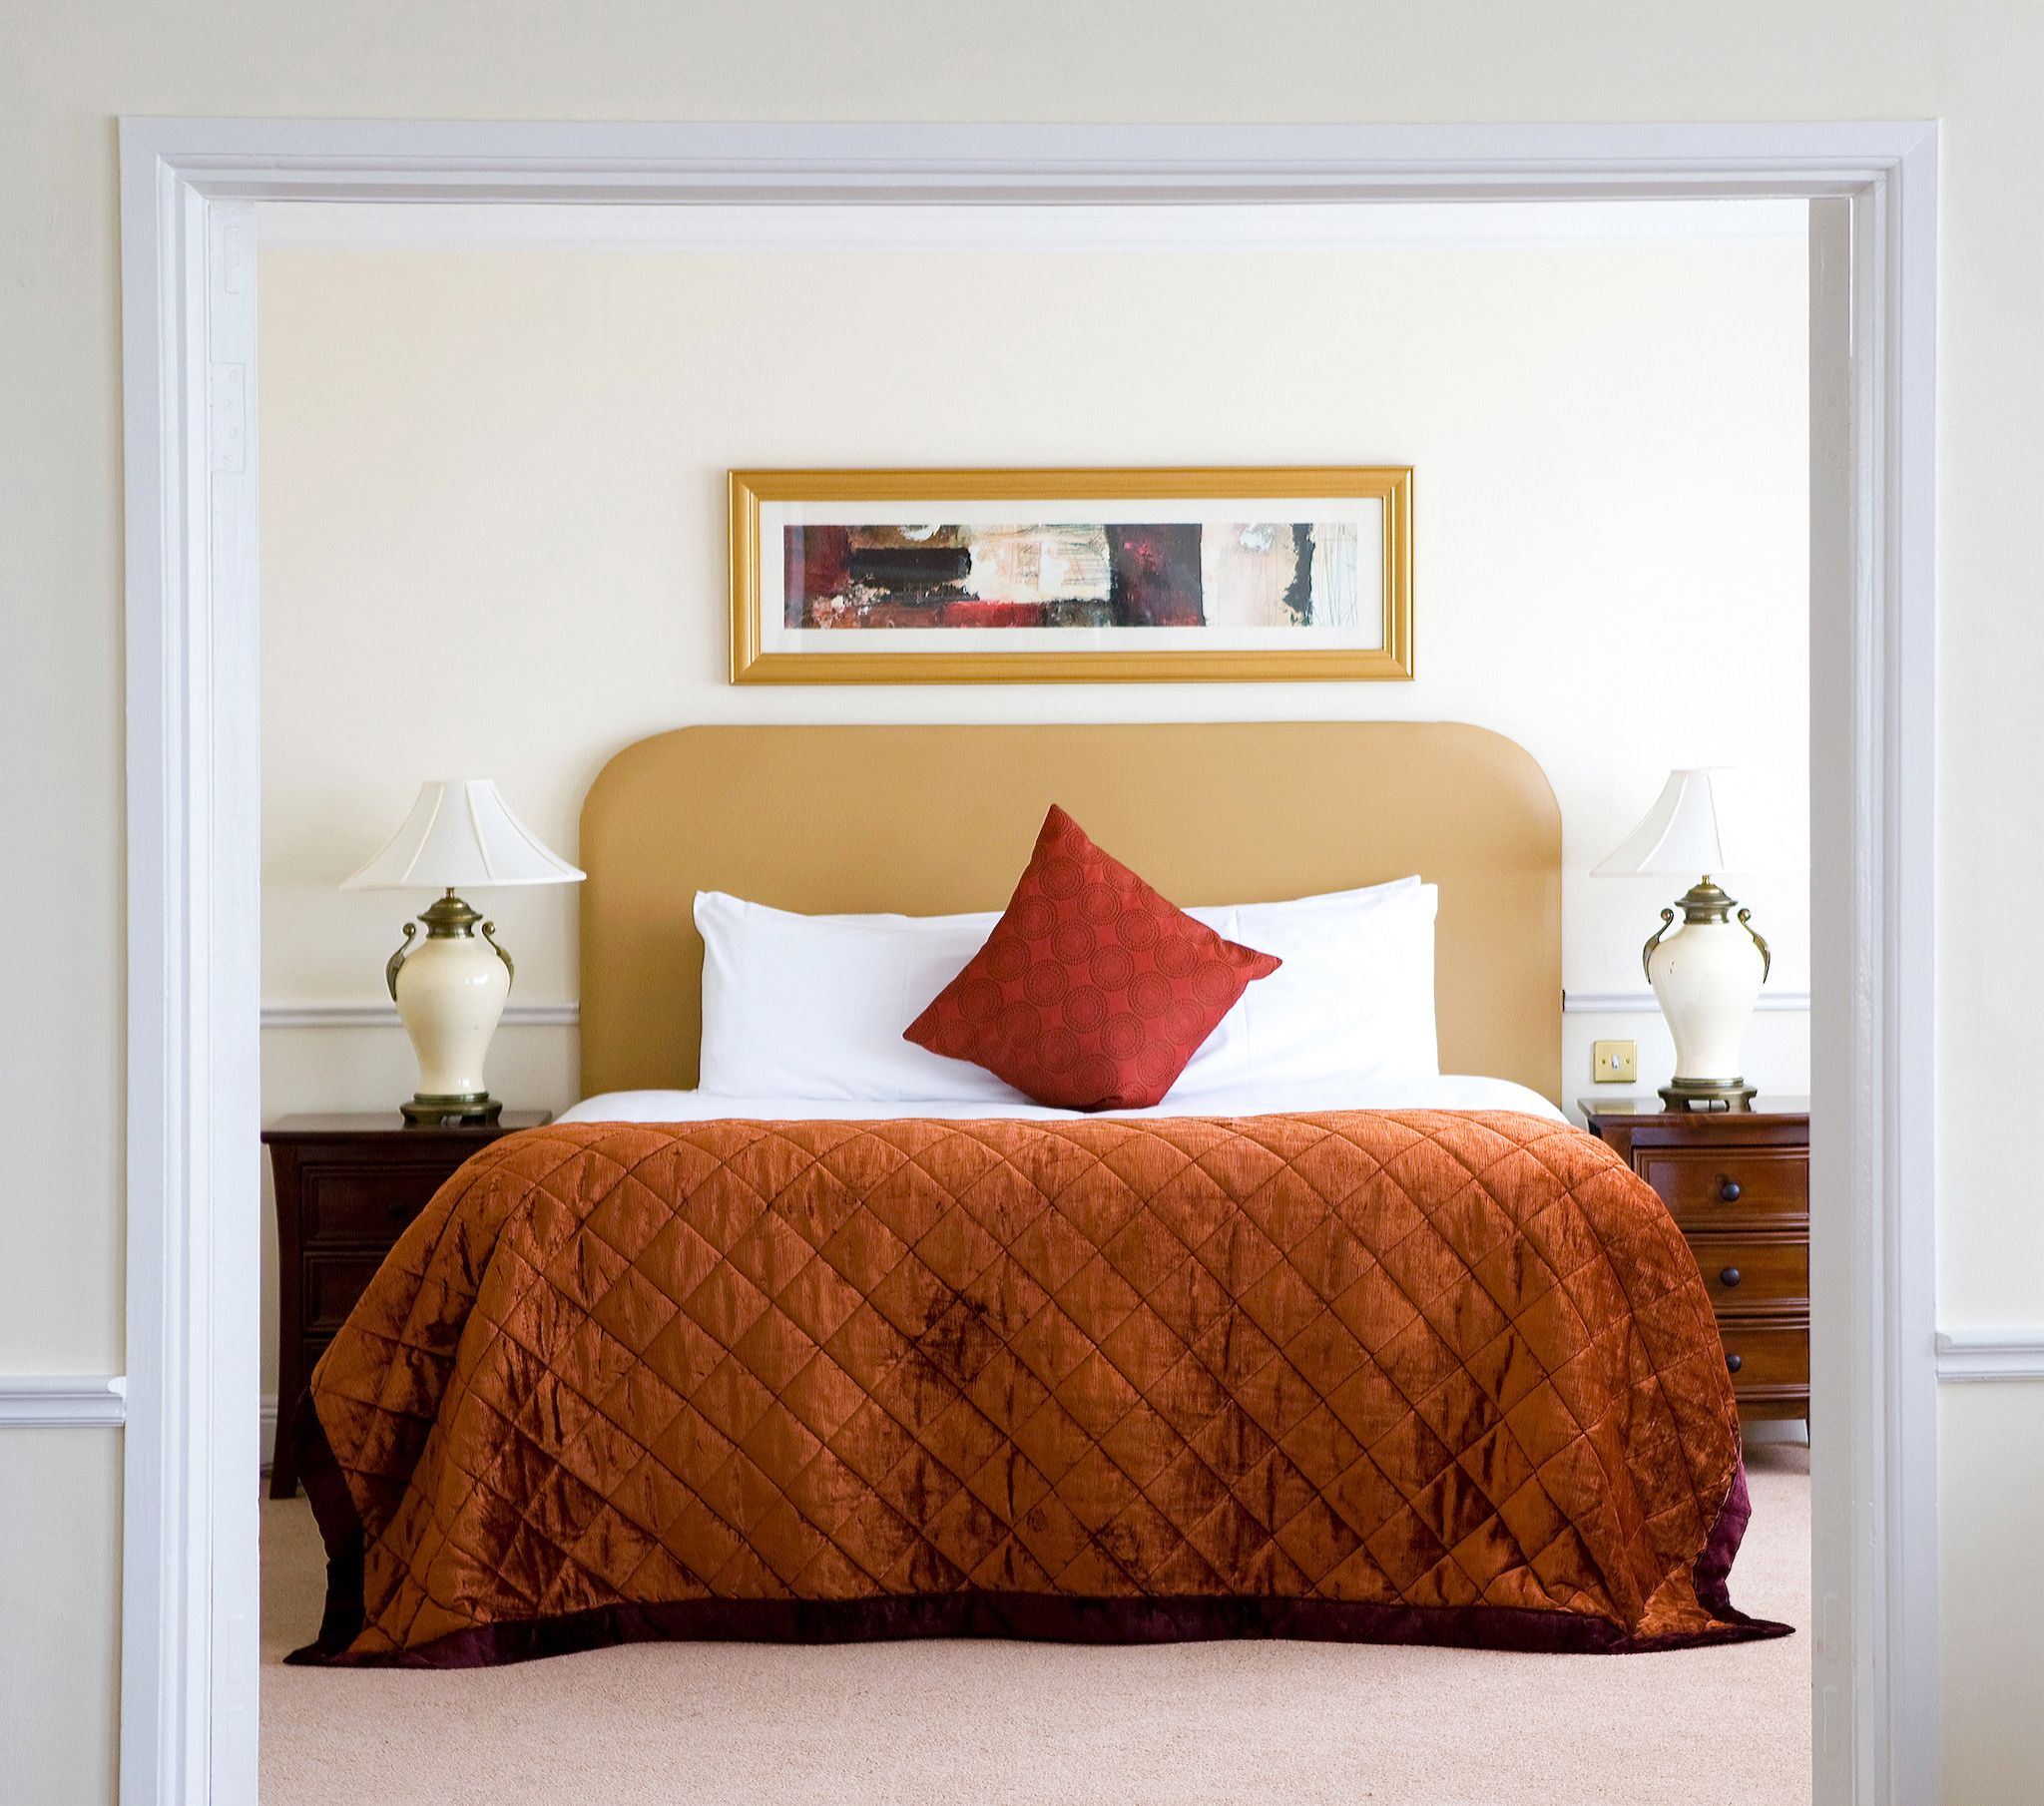 Master Suite At Clyde Court Hotel, Dublin, Ireland